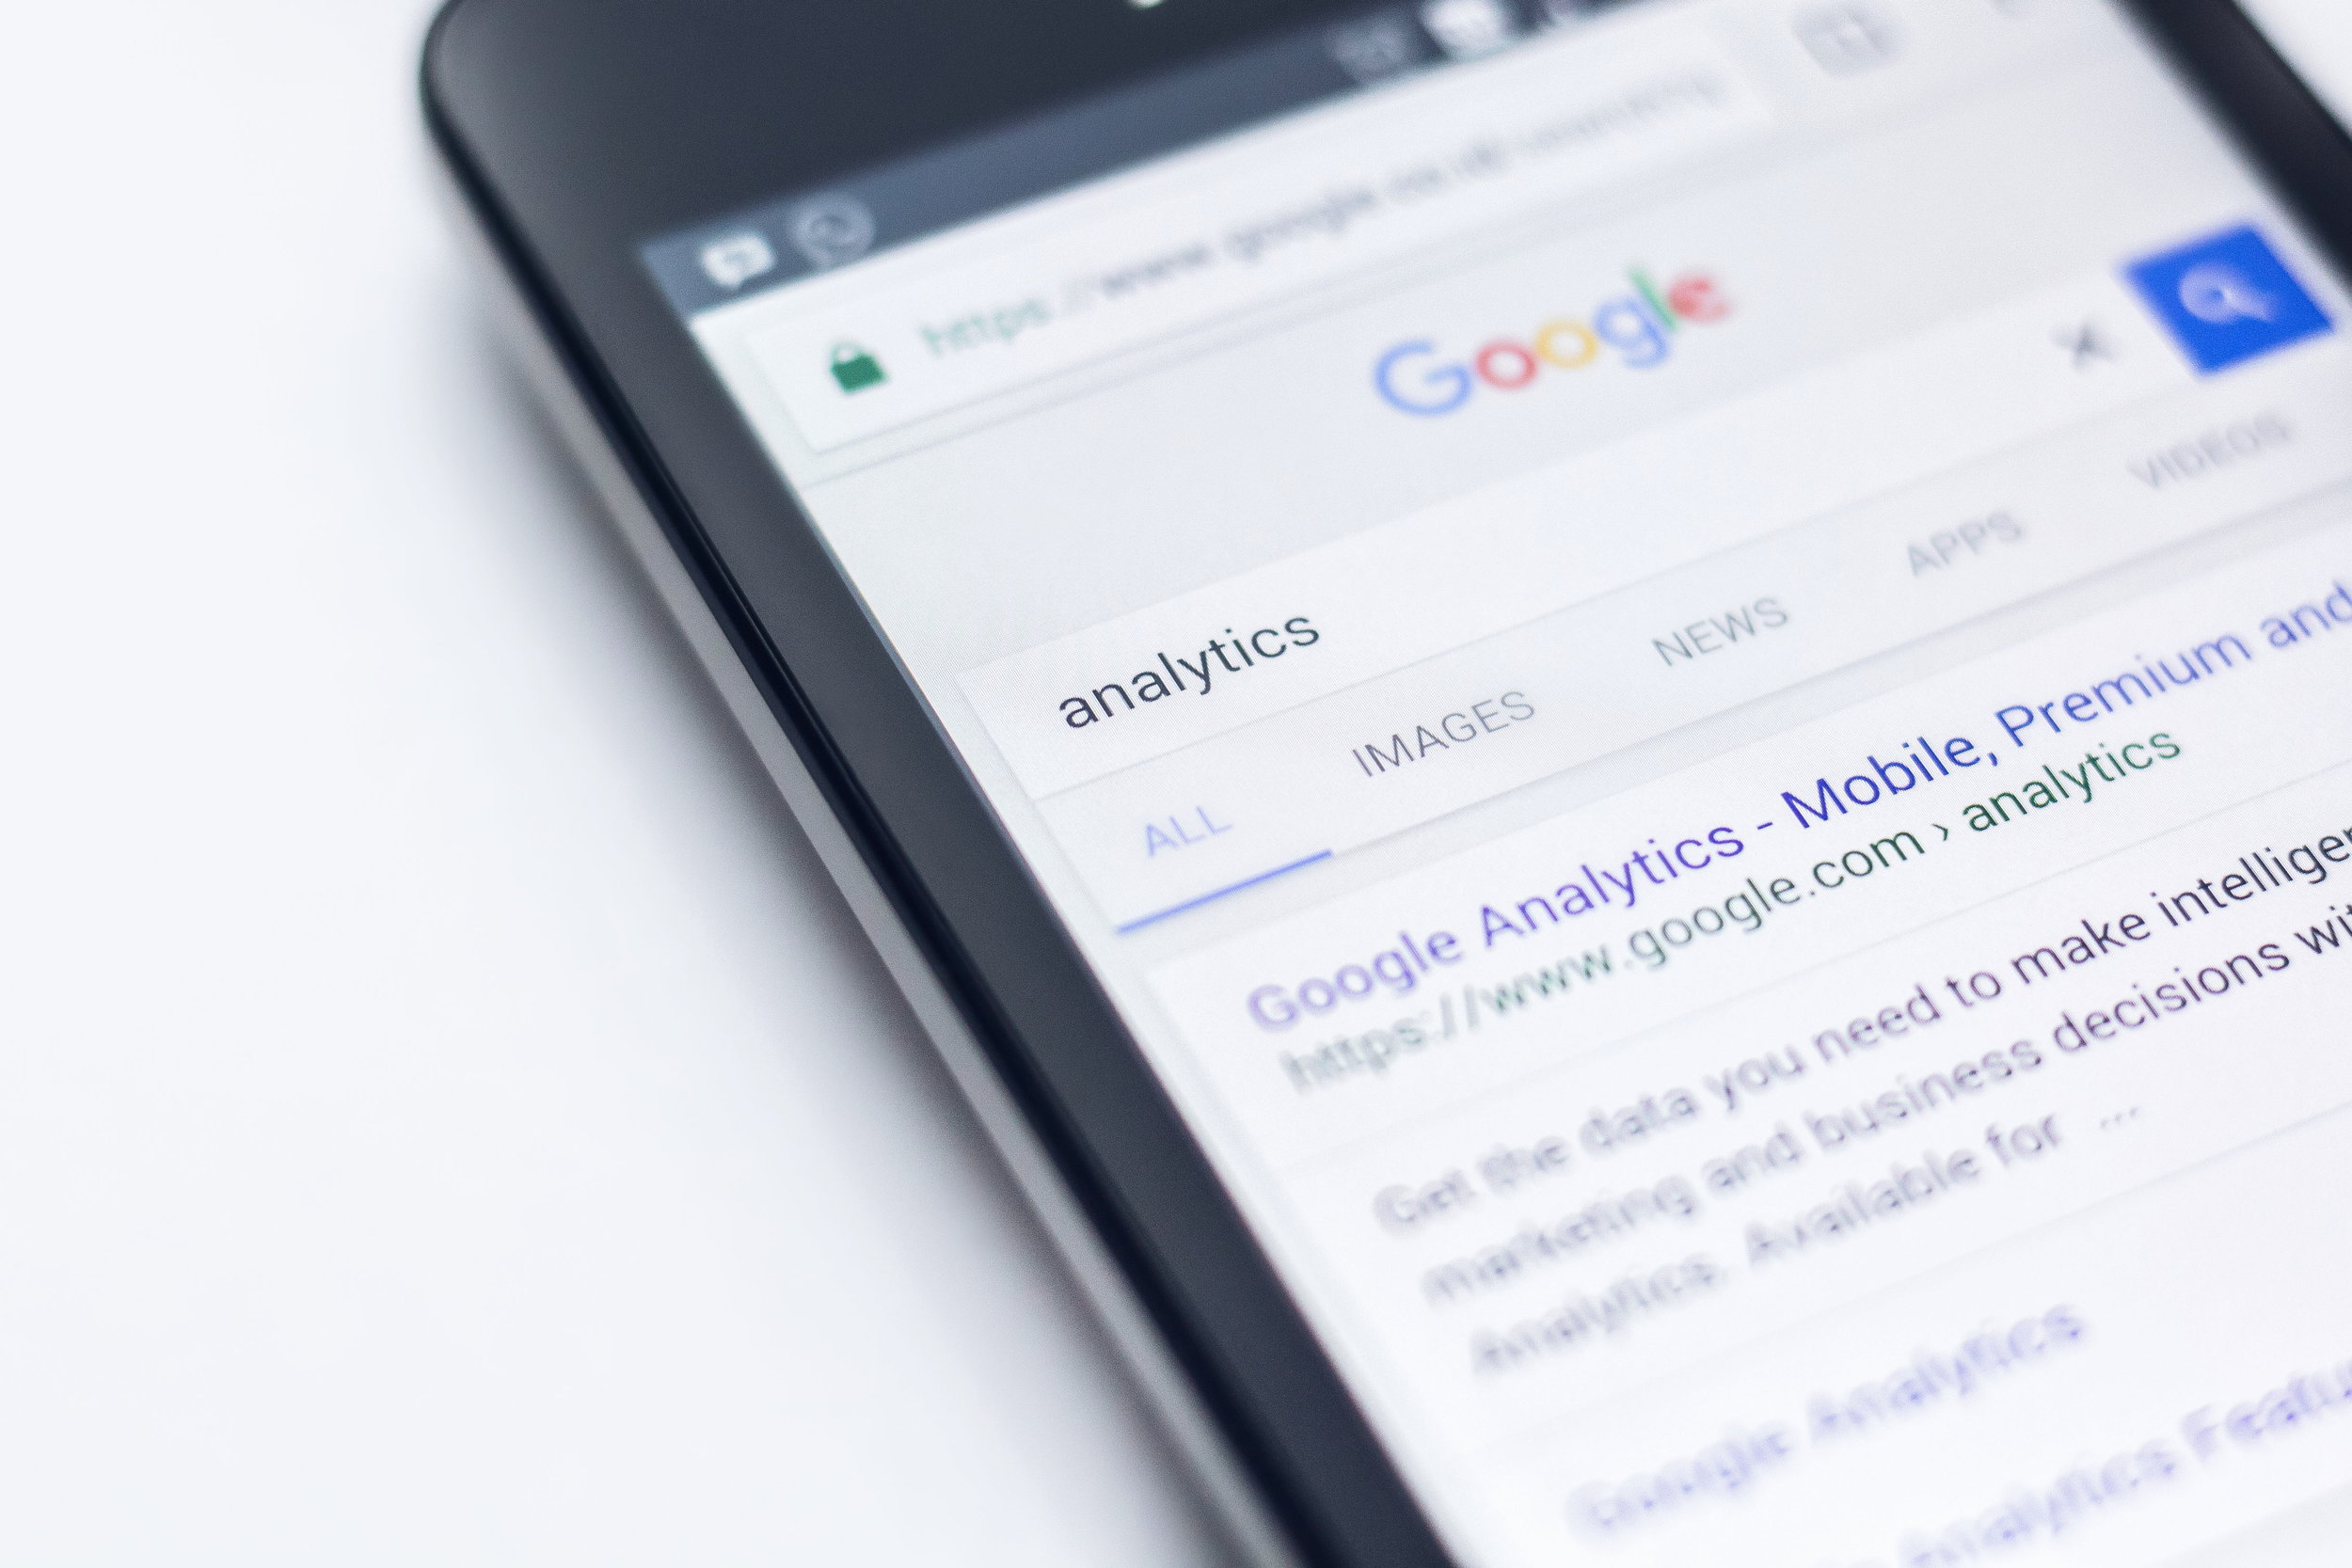 Google AdWords & Analytics - Manage and create campaigns. Monitor account to ensure OCVJC complies with all the Grant stipulations. Continue to increase CTR. Stay on top of trends, words, and best practices.